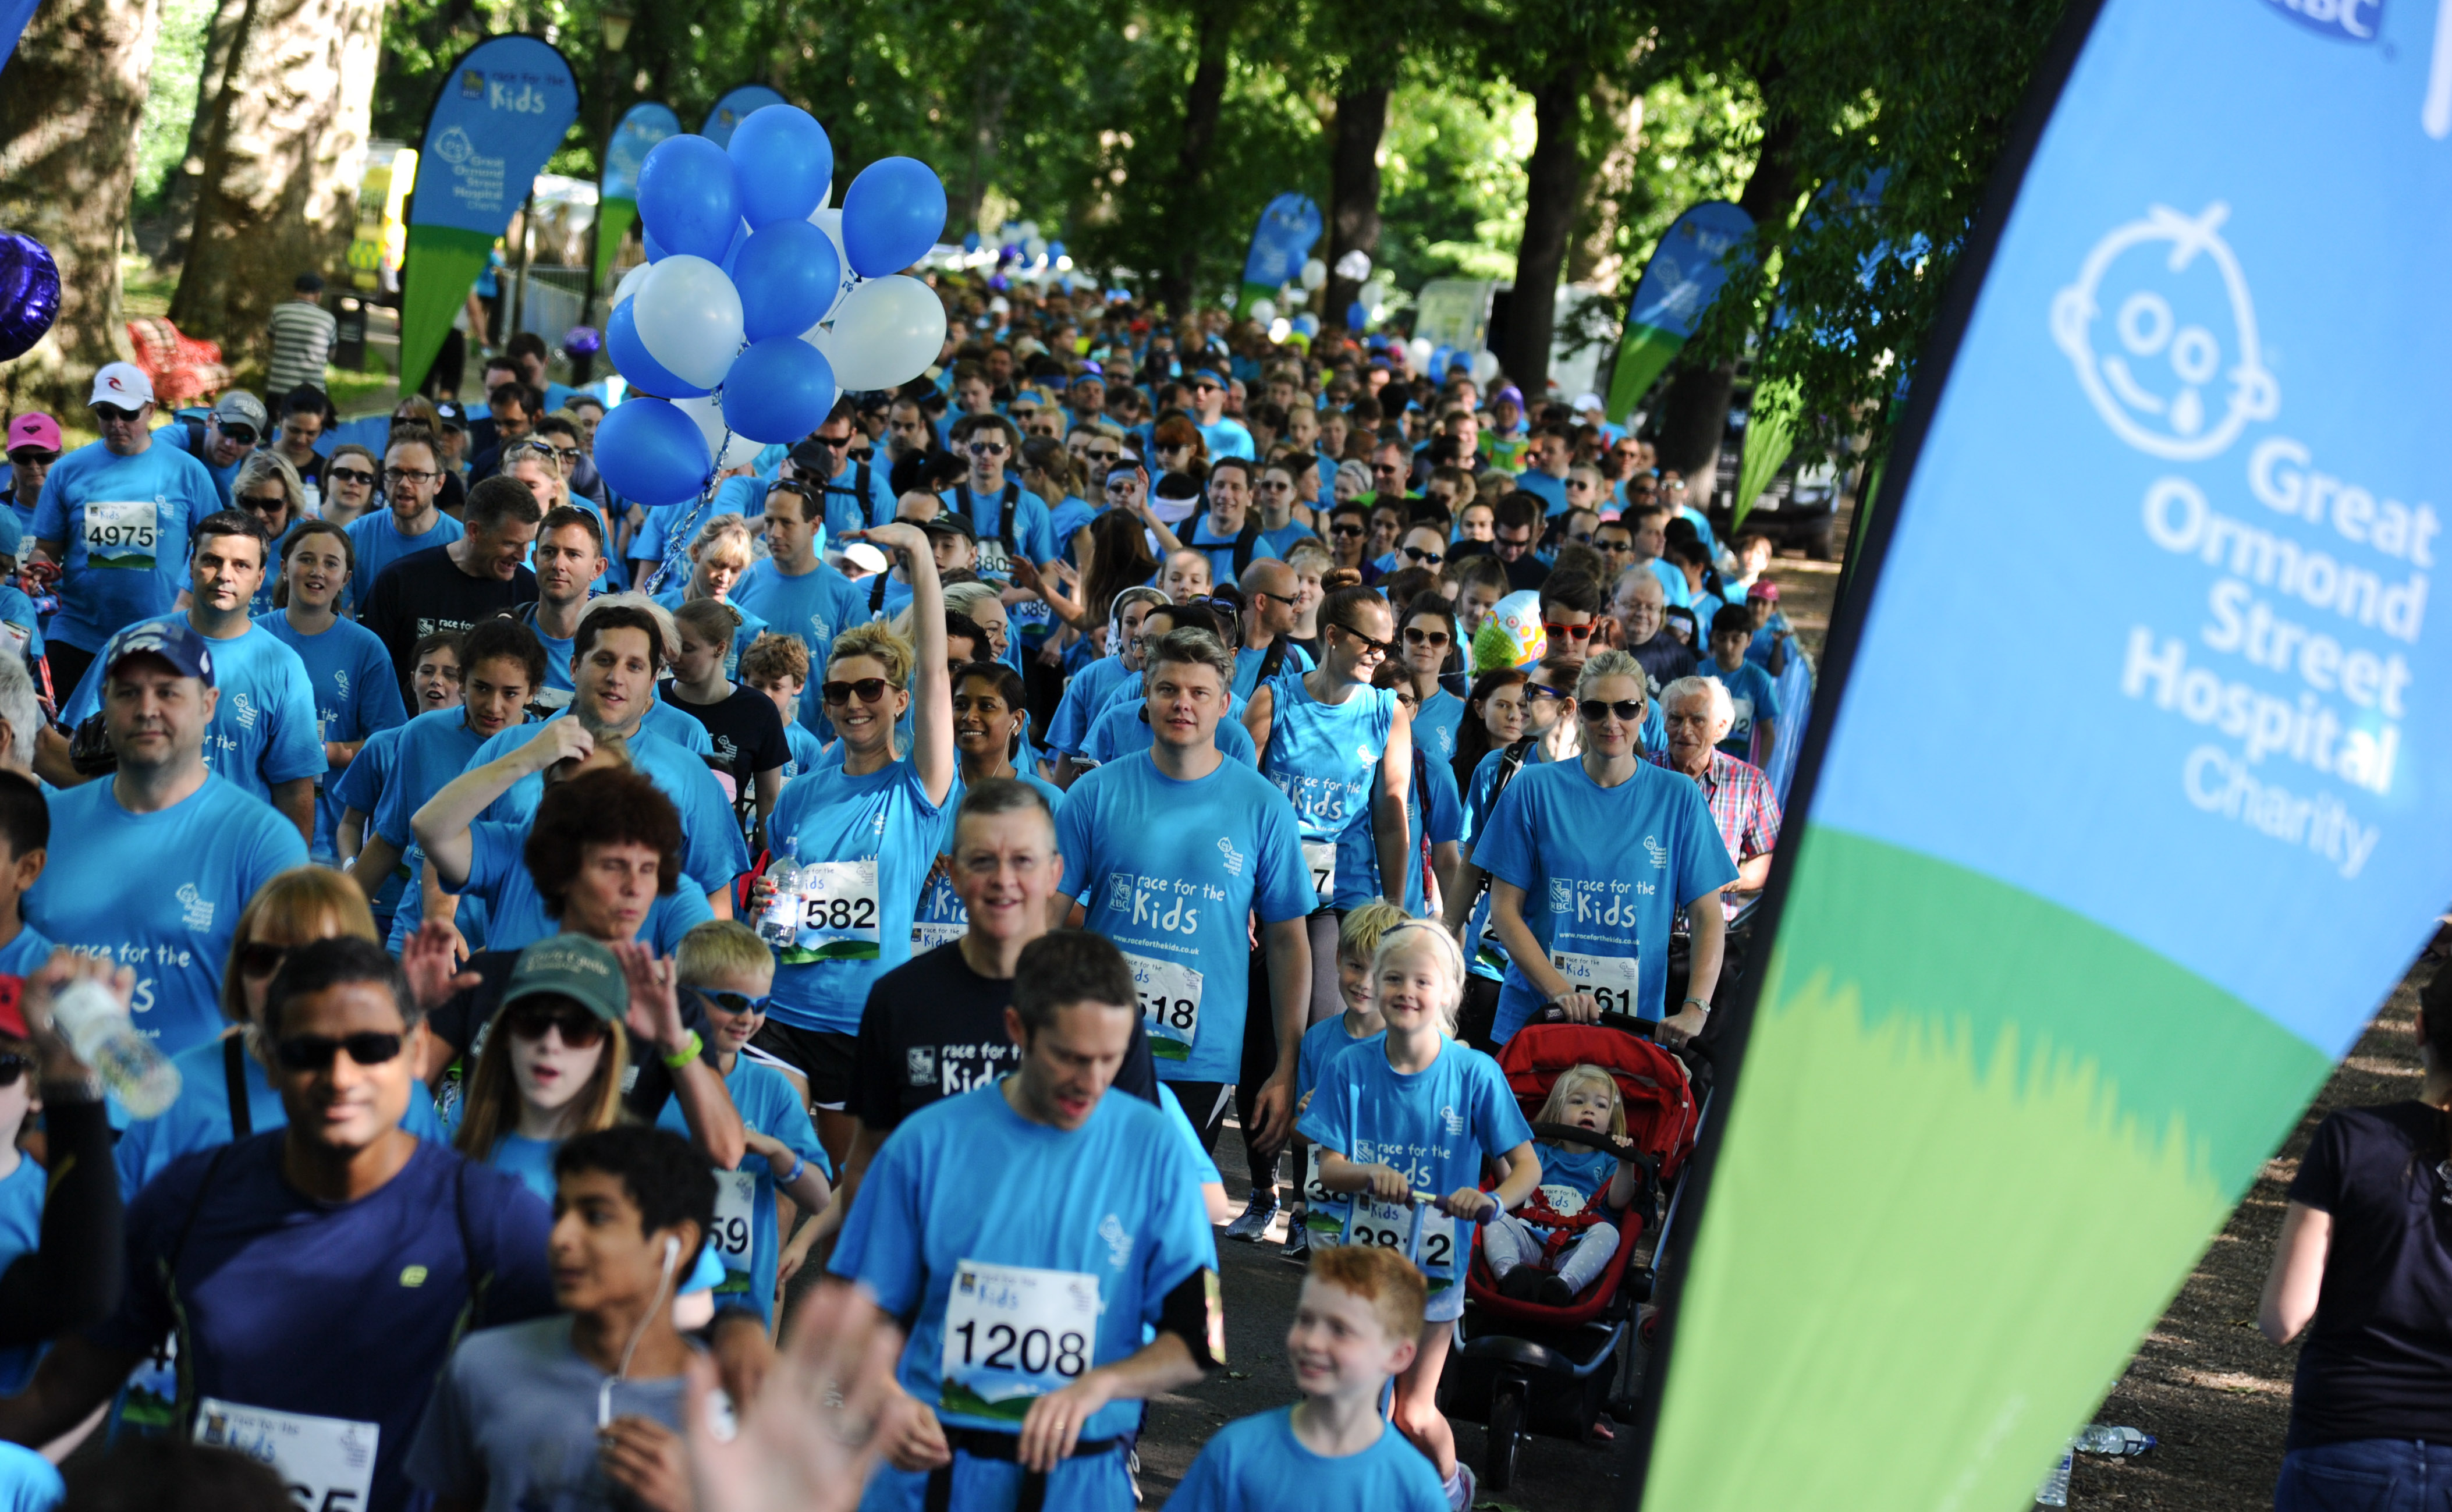 18. Great Ormond Street Hospital - Race for the Kids